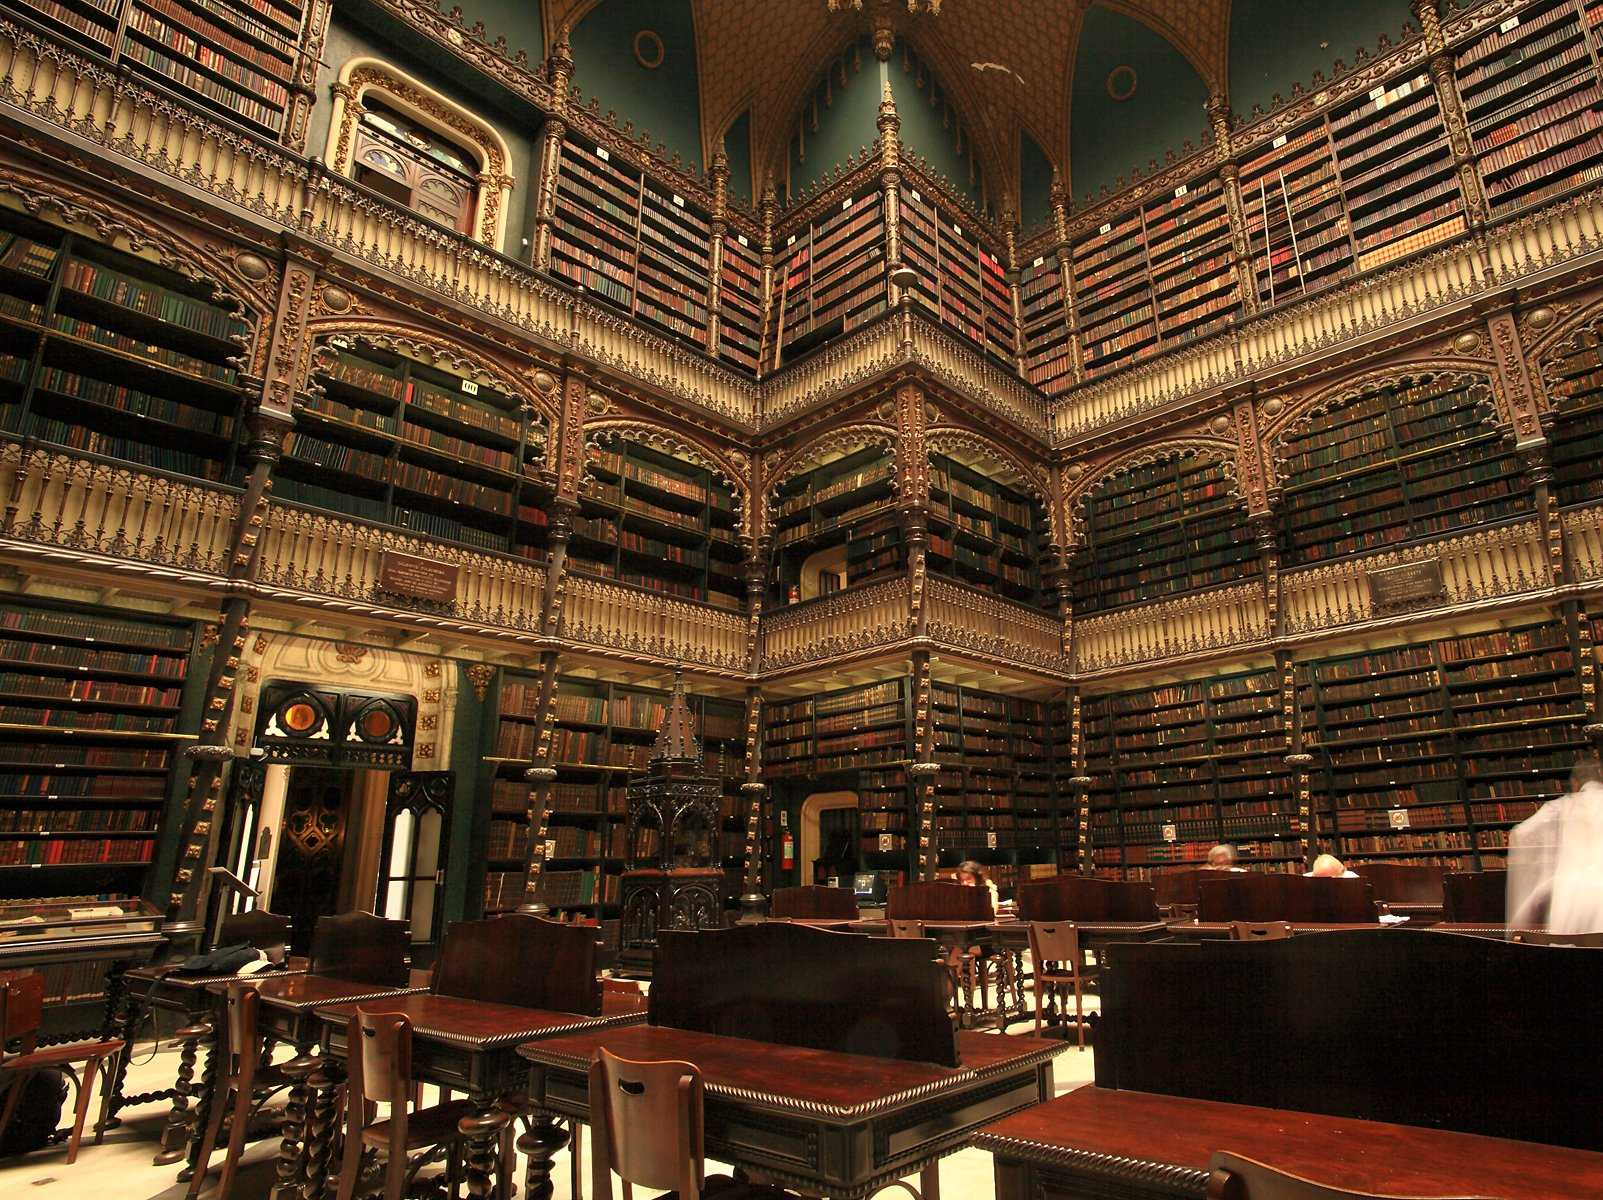 Most Beautiful Libraries From Around The World - Royal Portuguese Reading Room